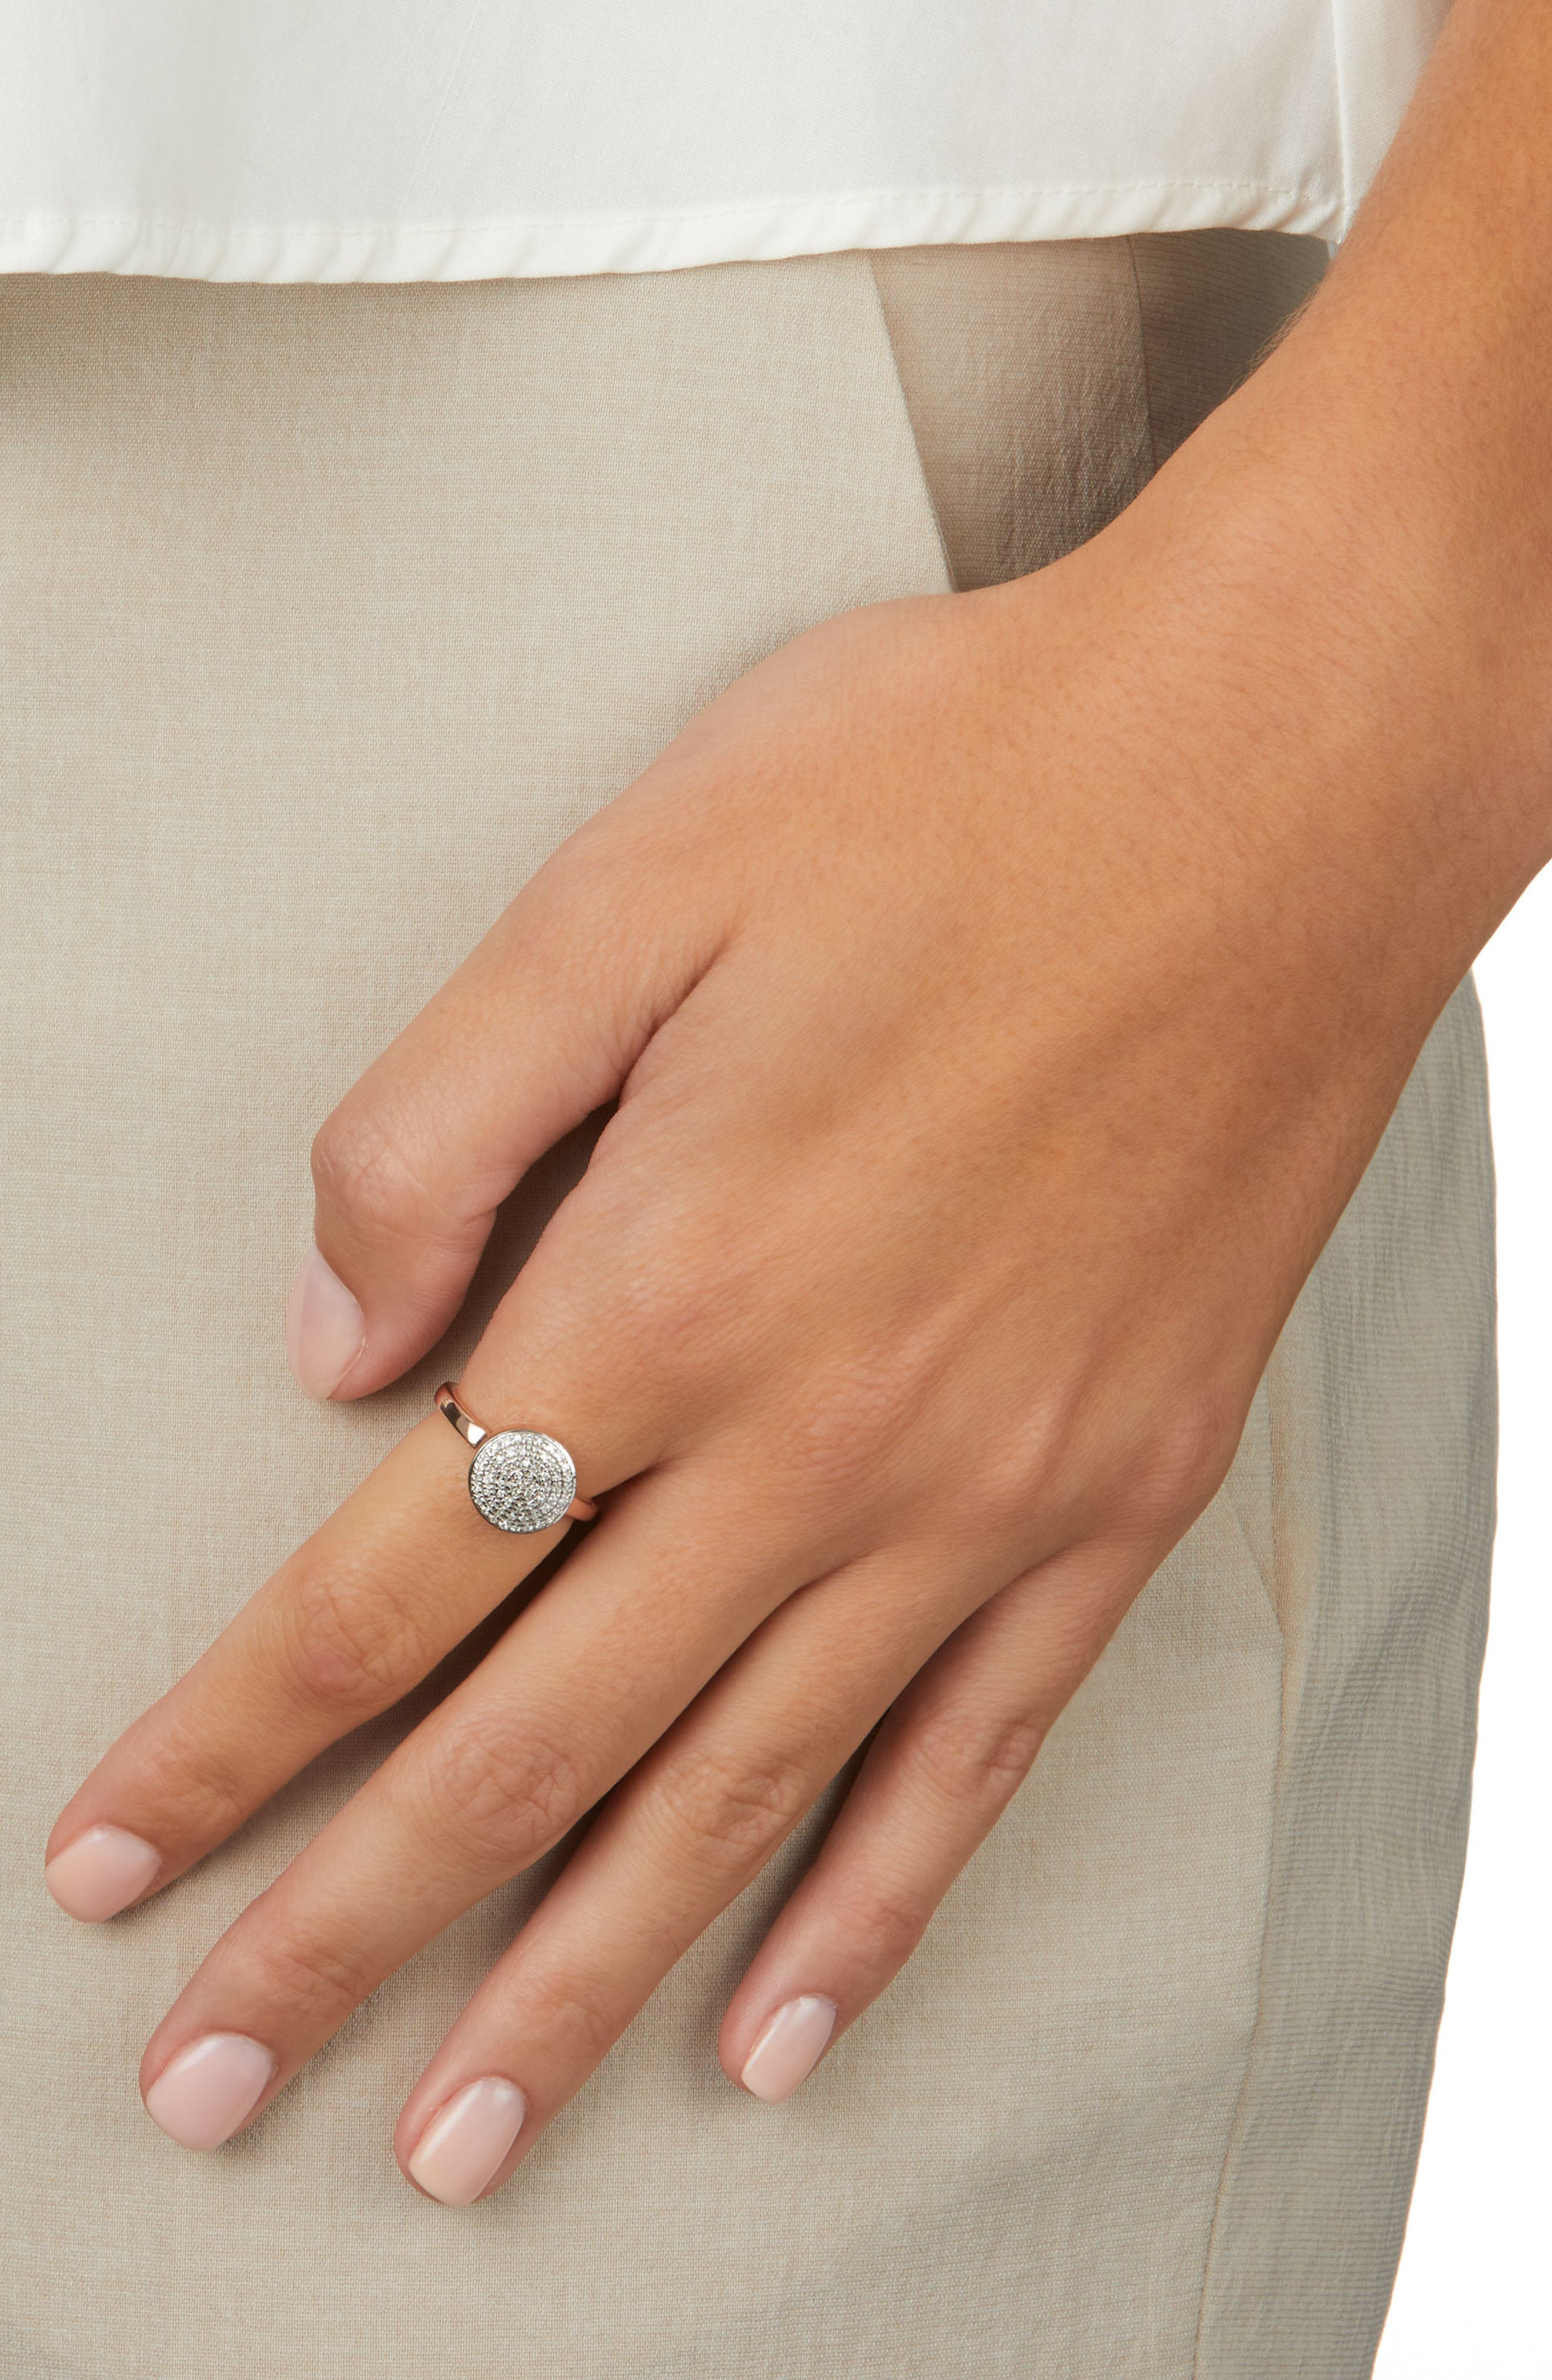 MONICA VINADER, Fiji Large Diamond Button Stack Ring, Alternate thumbnail 2, color, ROSE GOLD